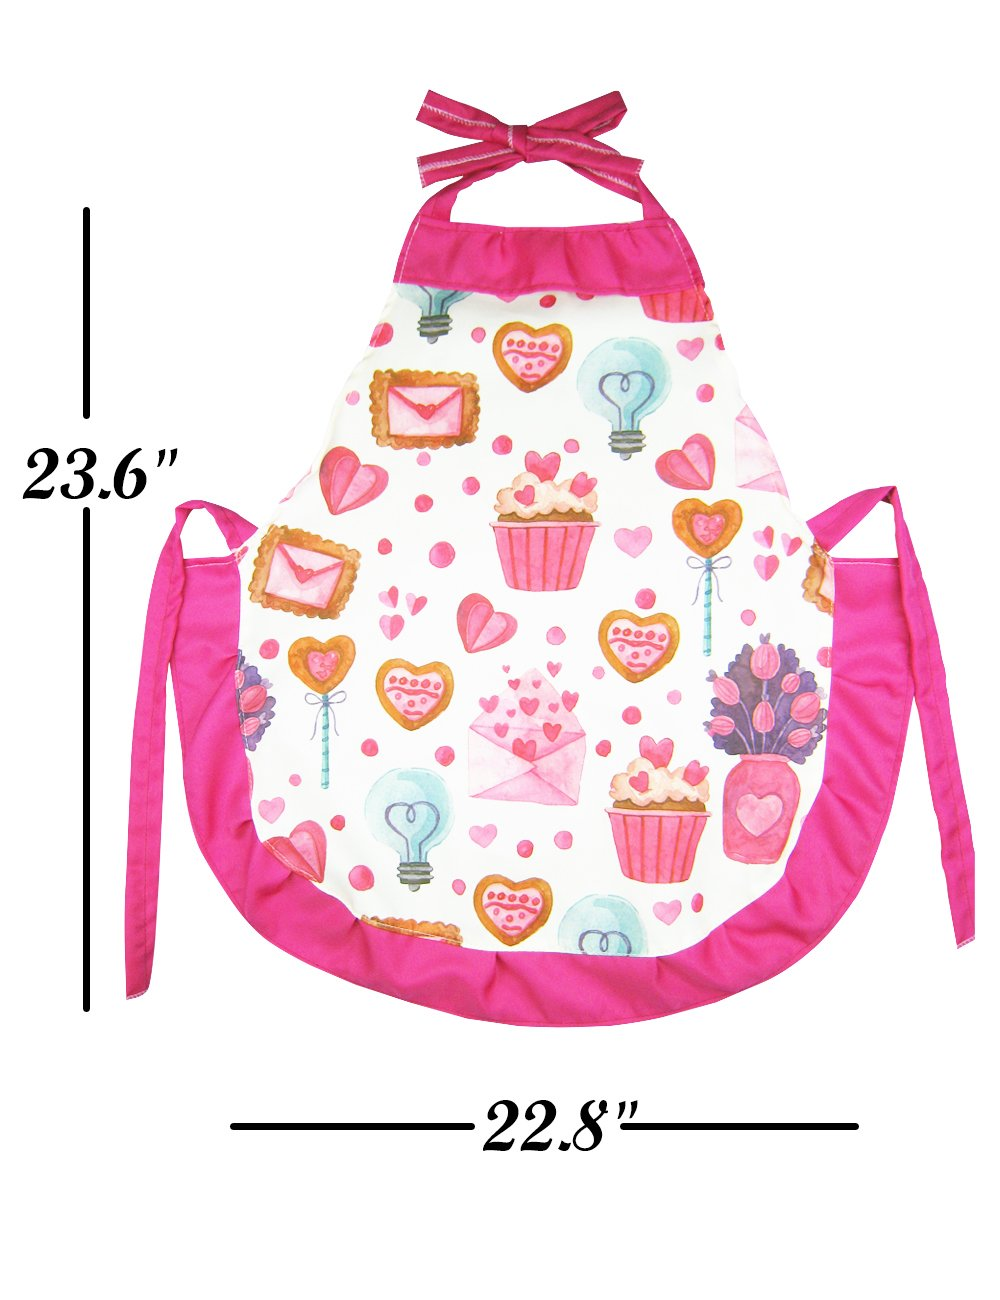 Cupcake Chef Set for Kids Cooking, Play Set with Apron for Girls,Chef Hat, and Other Accessories for Toddler,Career Role Play, Great Gift for Children Pretend Play, Size Medium 5-12 11 Pcs (Chef set) by NLooking (Image #2)